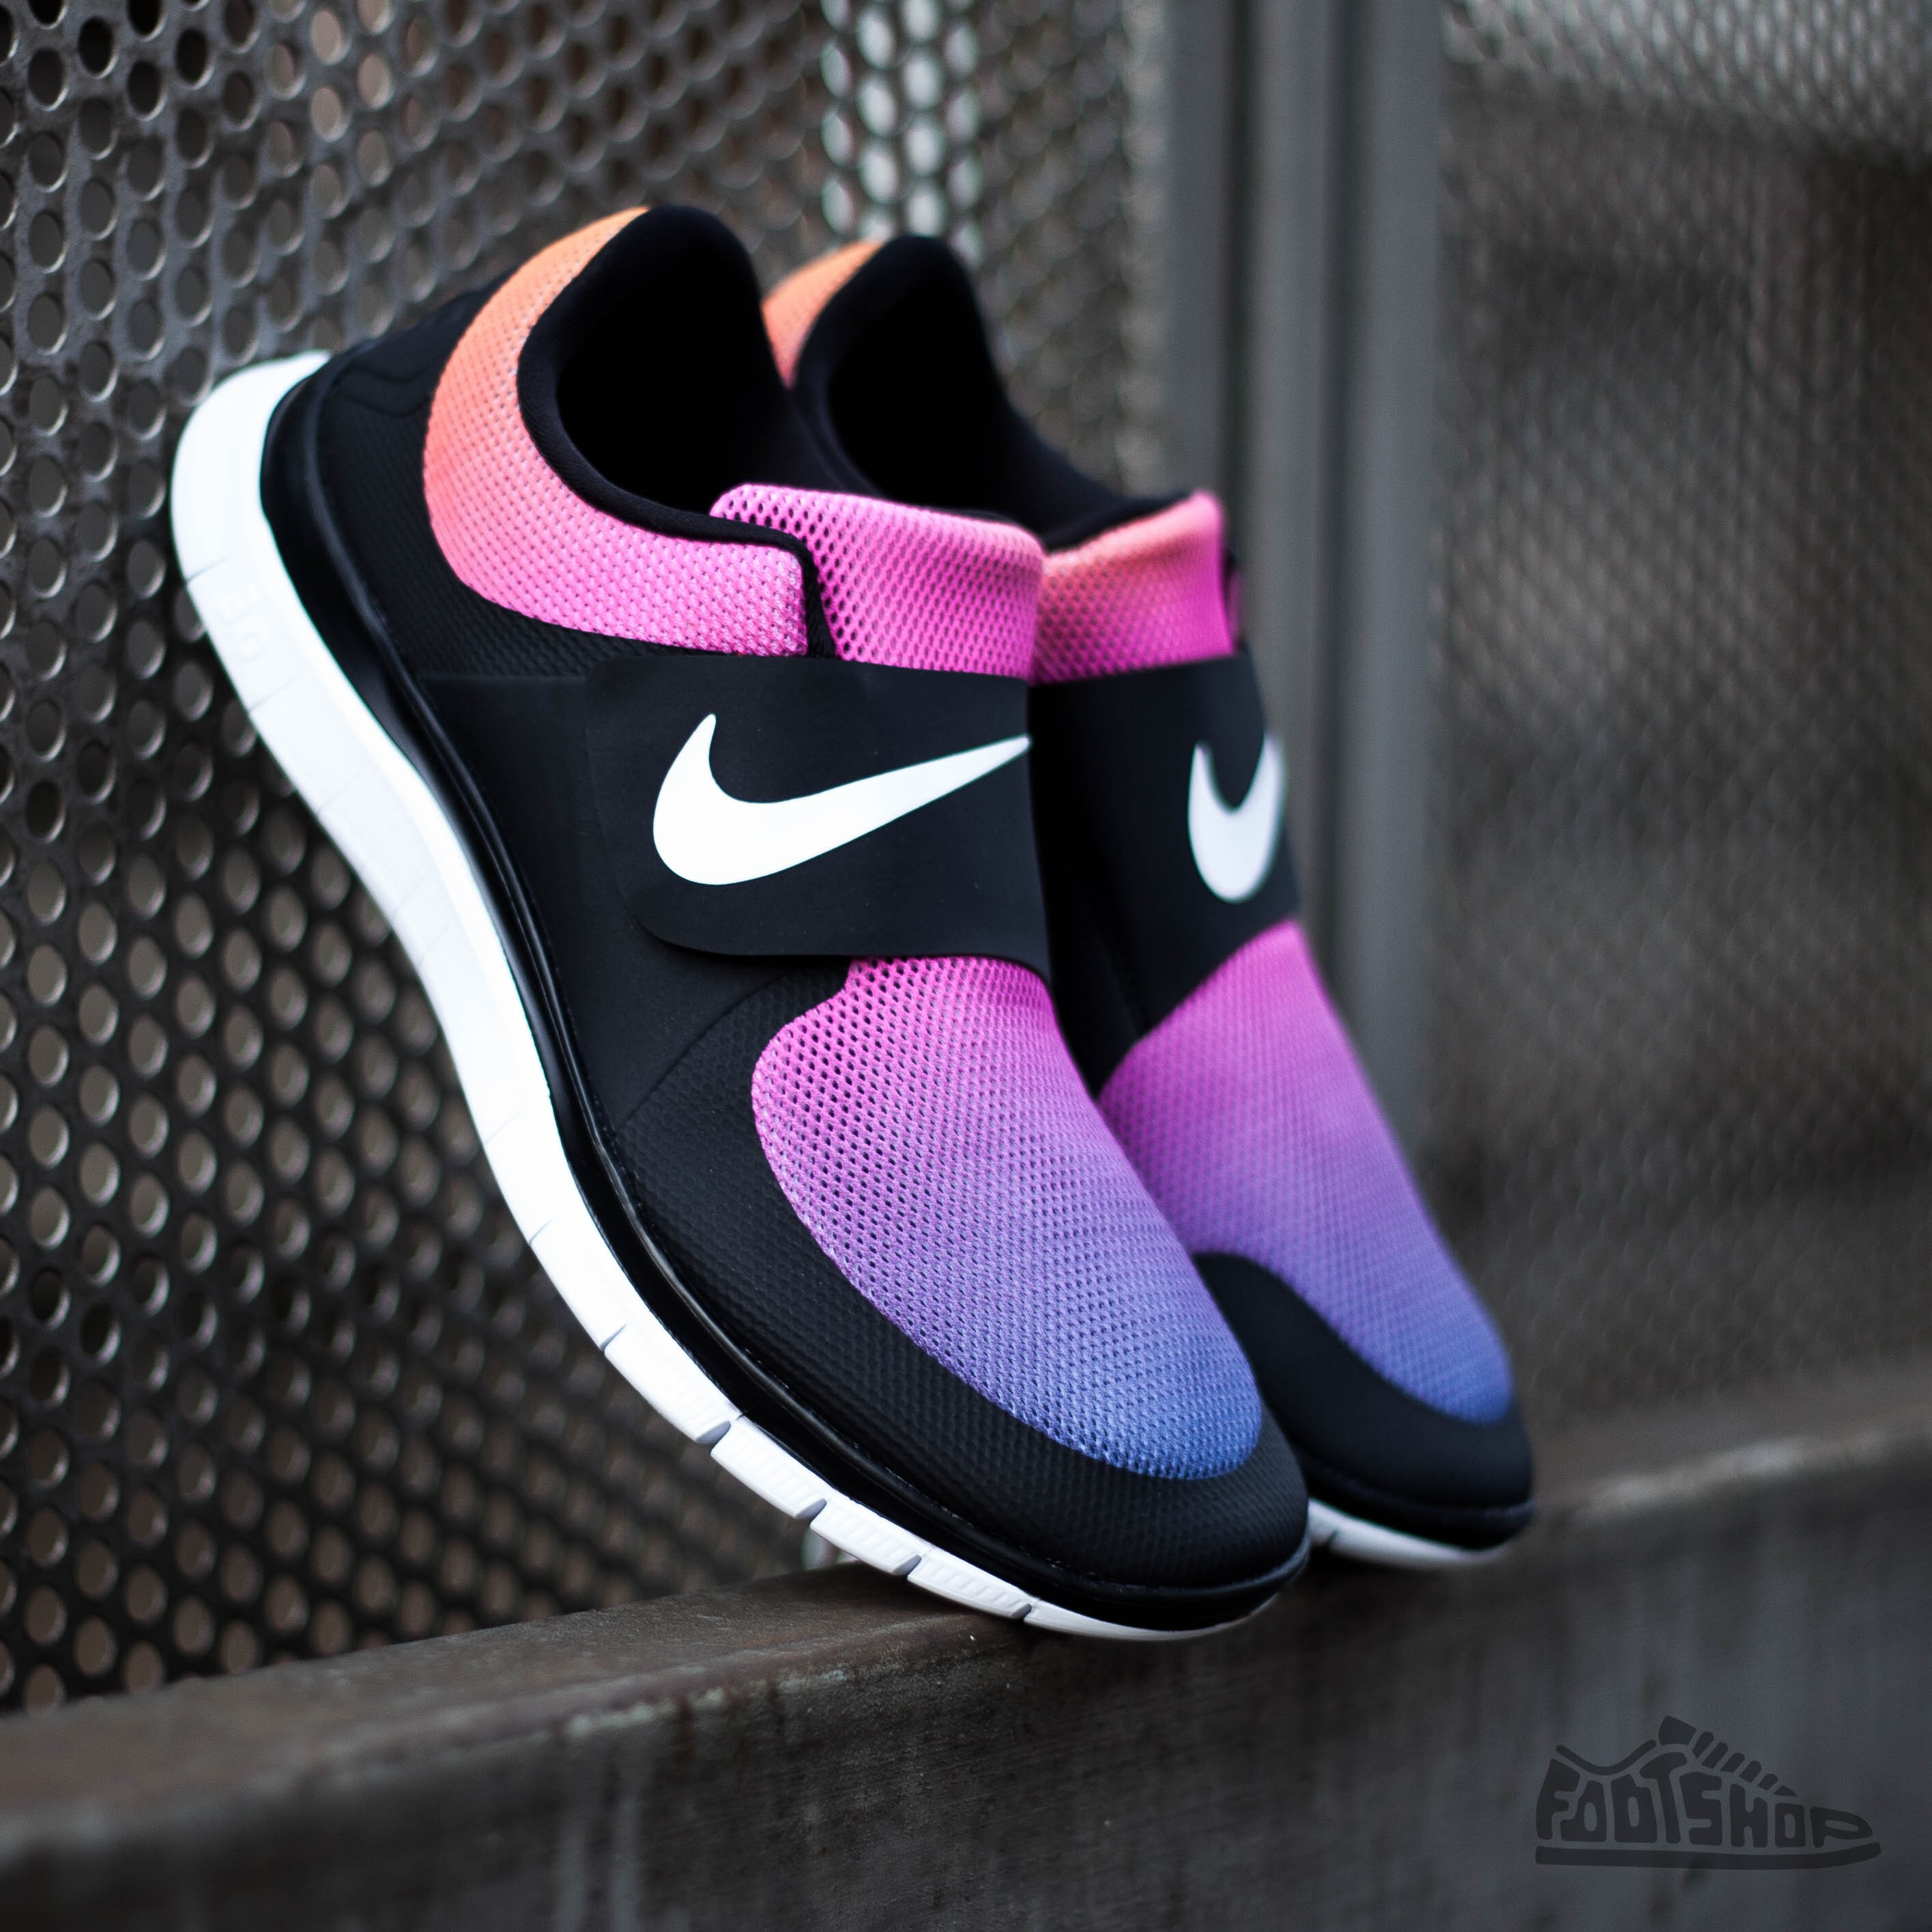 125f0ceabb47 Nike Free Socfly SD Black White-Pink Flash-True Yellow